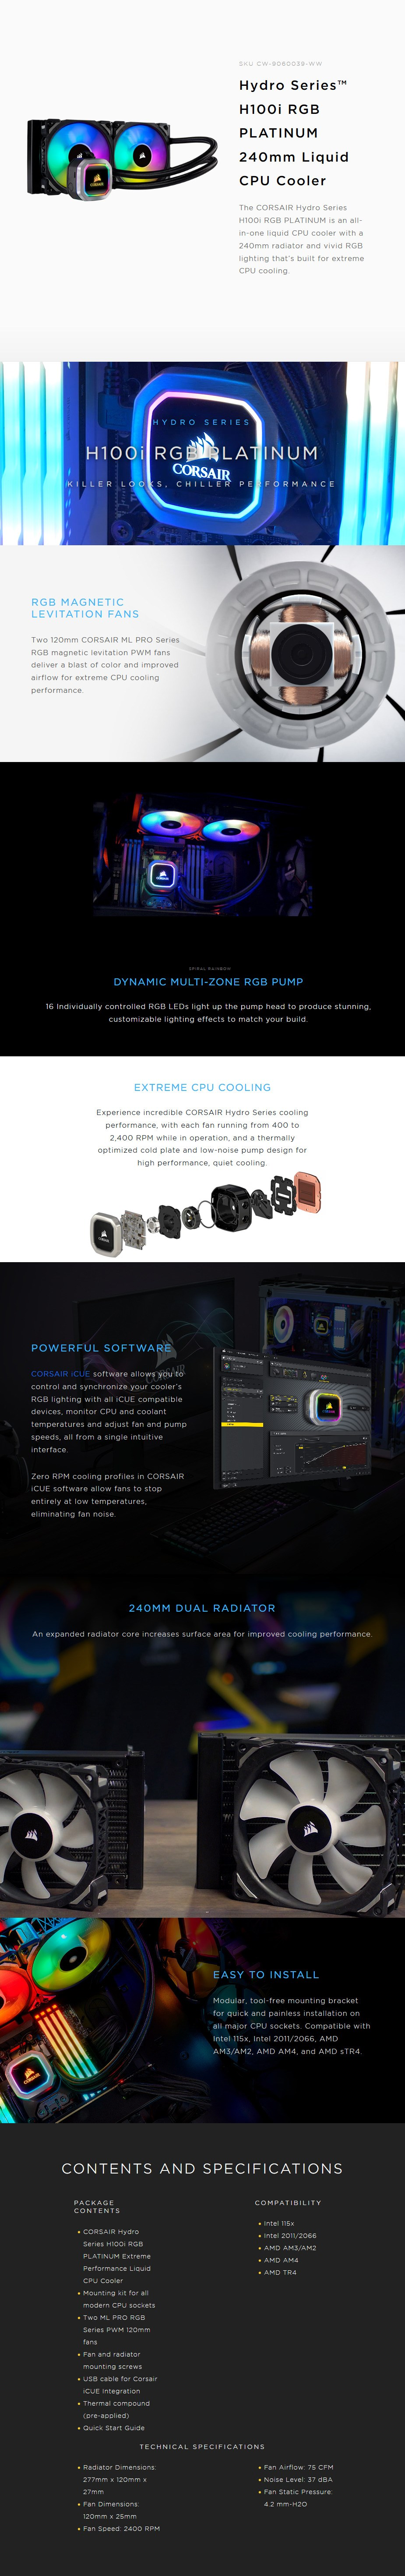 Corsair Hydro Series H100i PLATINUM RGB 240mm All-in-One Liquid CPU Cooler Display Overview 1